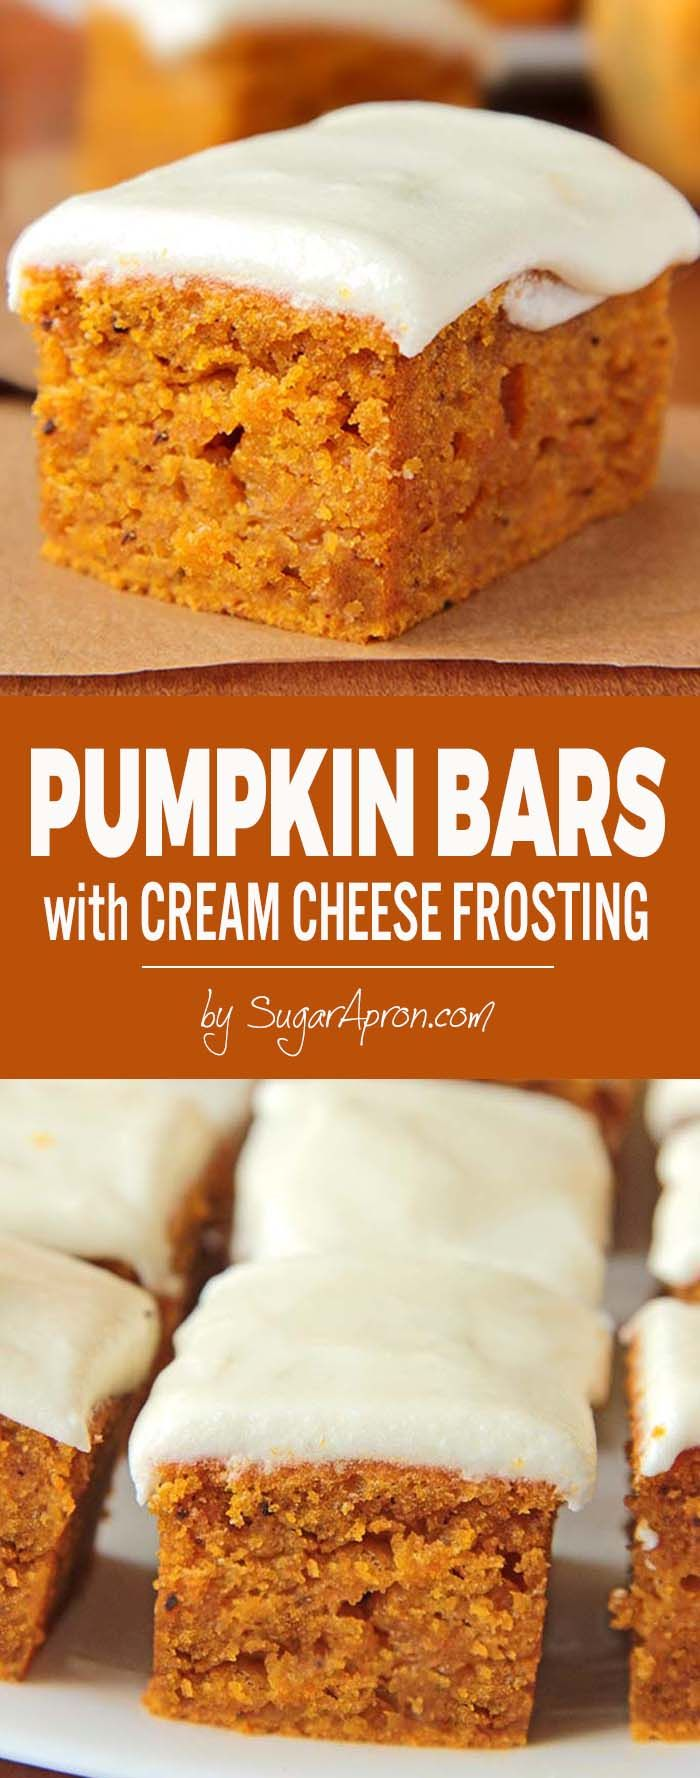 A perfect fall dessert, delicious pumpkin bars with cream cheese frosting.